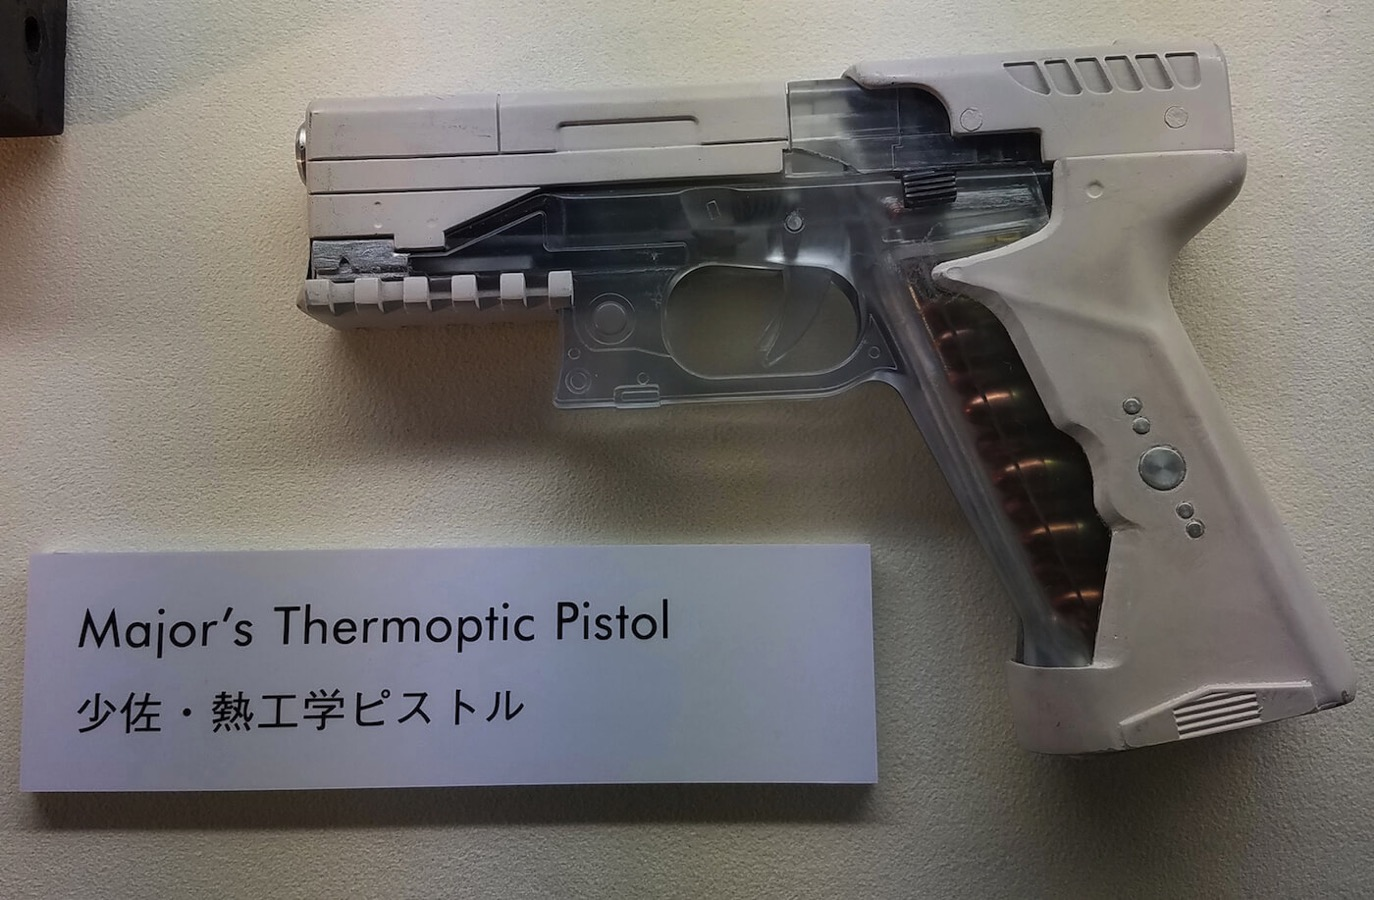 ghost-in-the-shell-thermoptic-pistol-the-major-scarlett-johansoon-copy.jpg